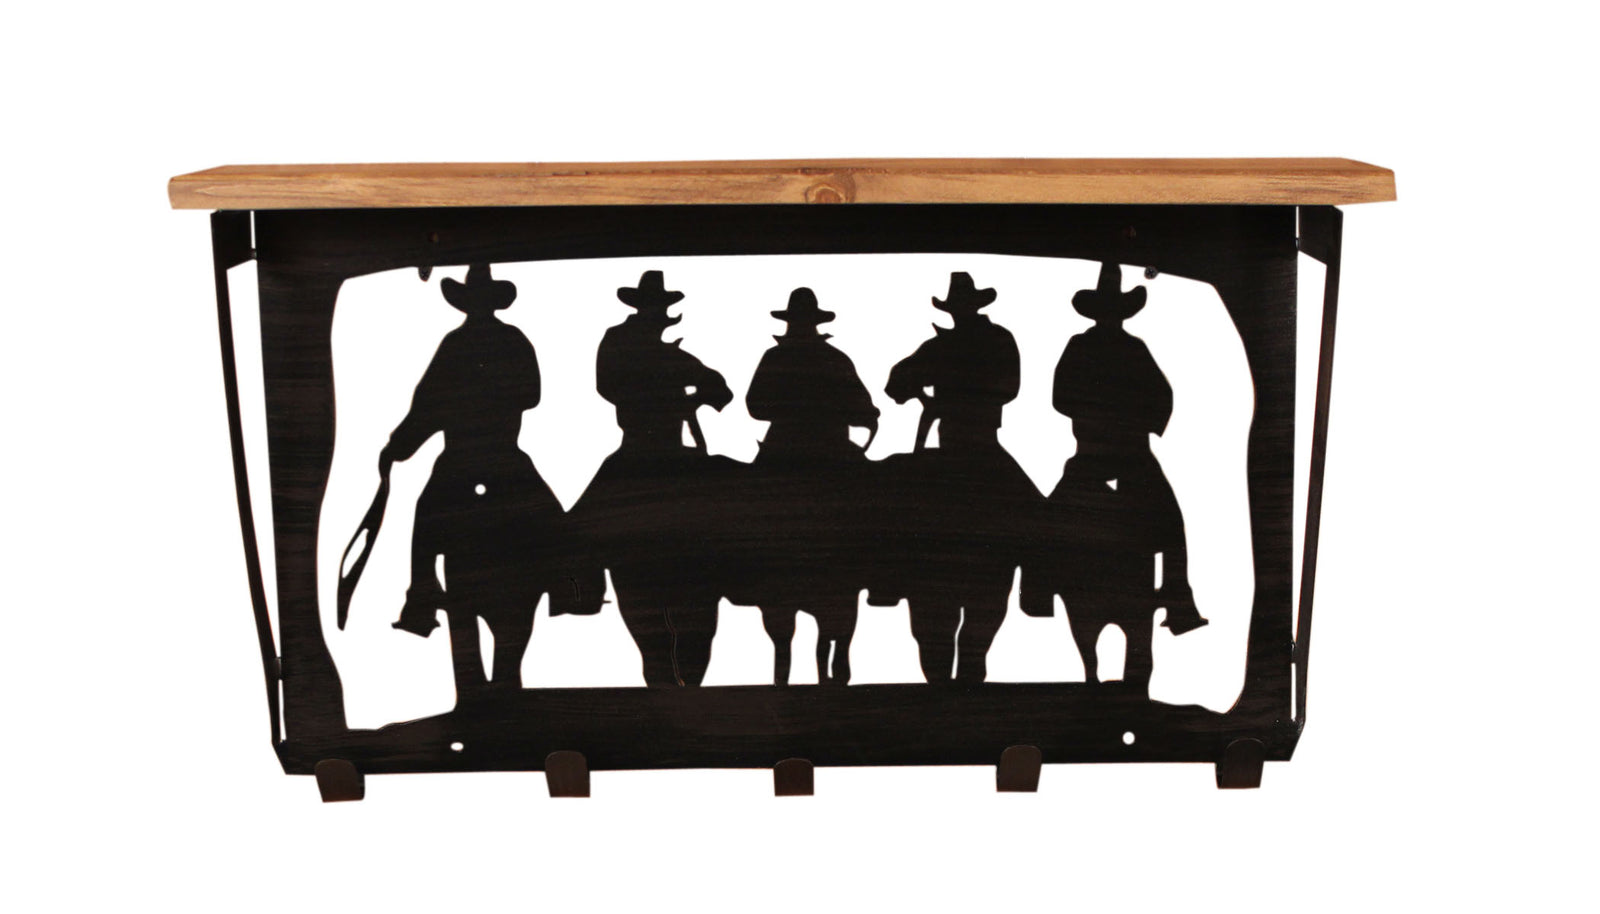 6x24 Cowboys Scene Coat Rack w/ Shelf - Coast Lamp Shop